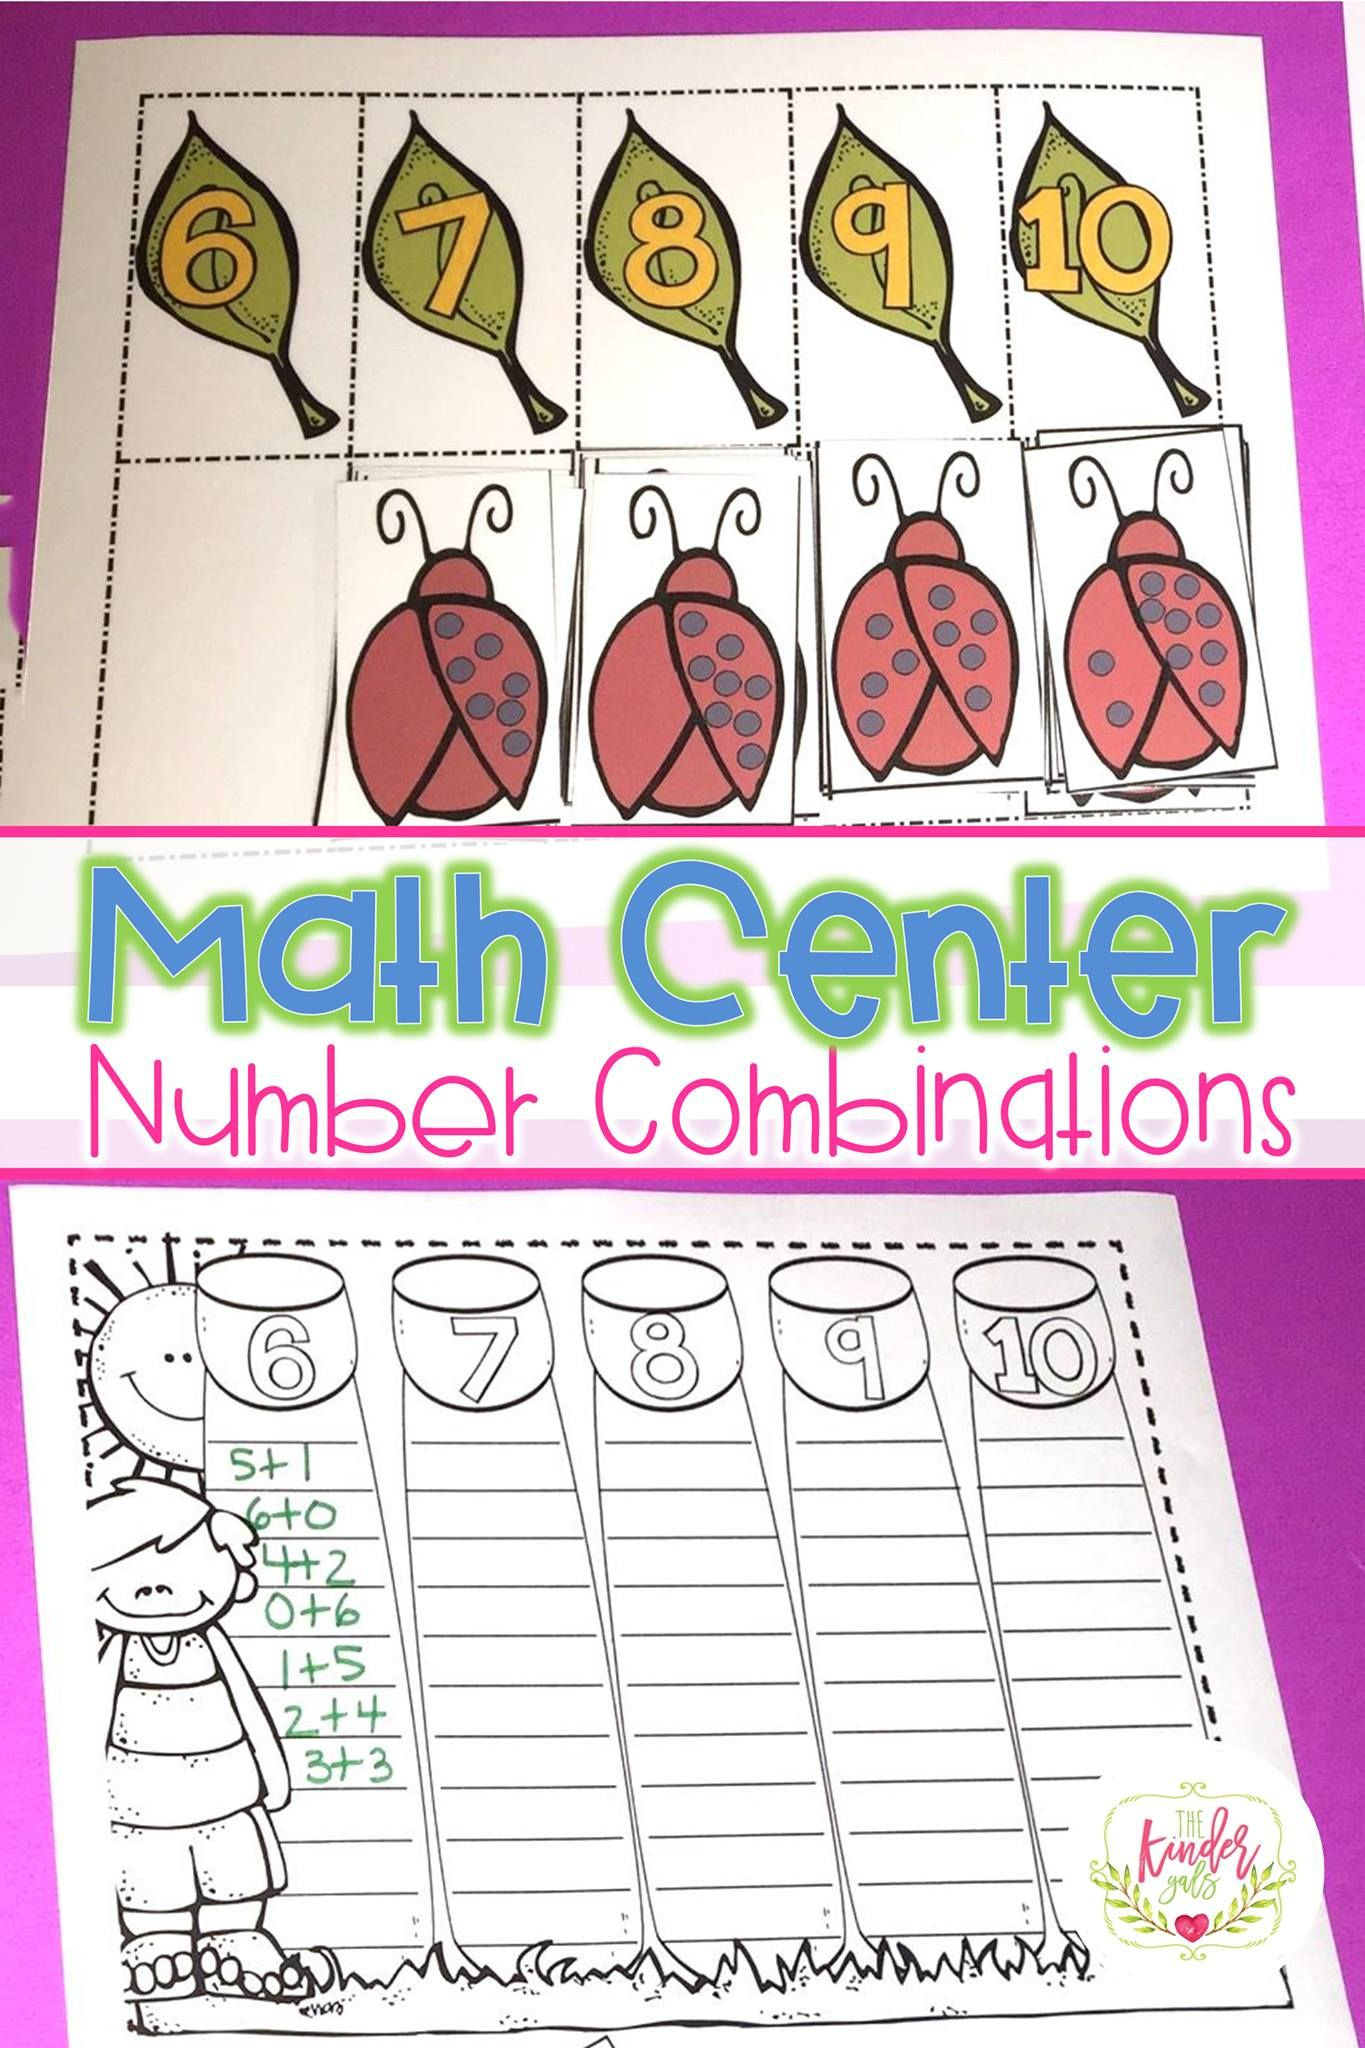 Small Group Math Di Easy As Pie Unit 5 Num Combo 6 10 By